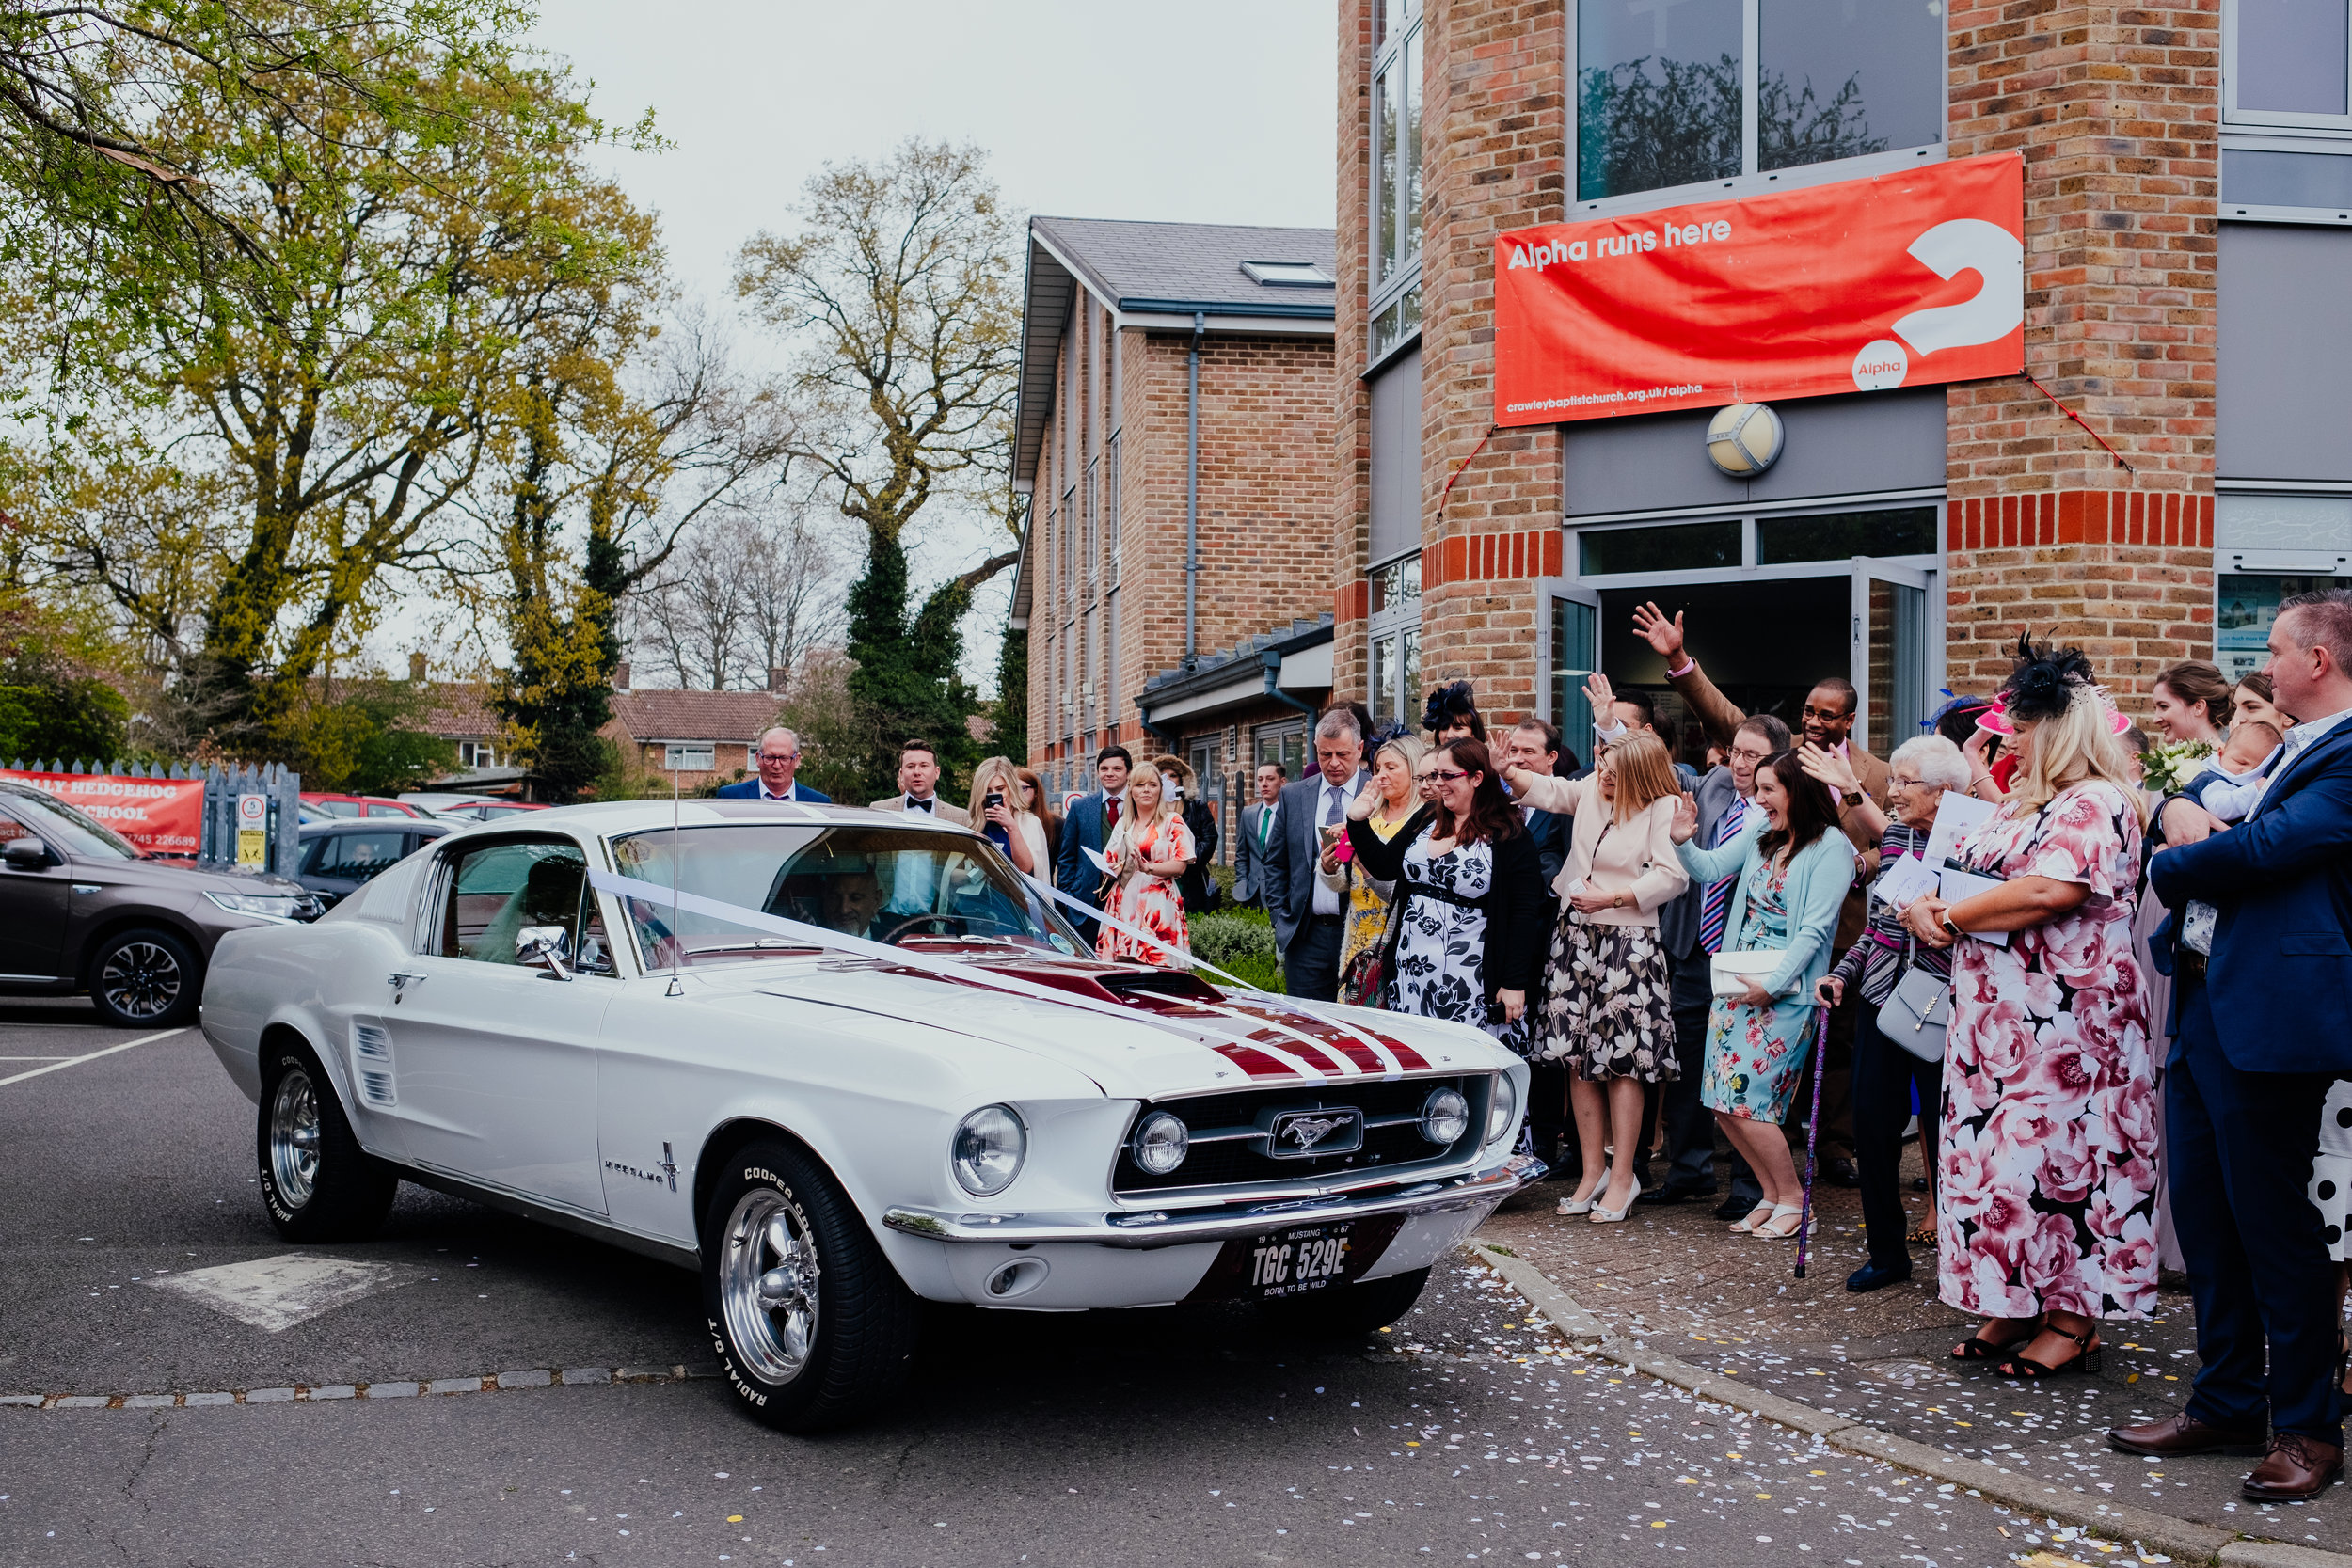 Guests wave as Bride and Groom drive away in a Mustang wedding car